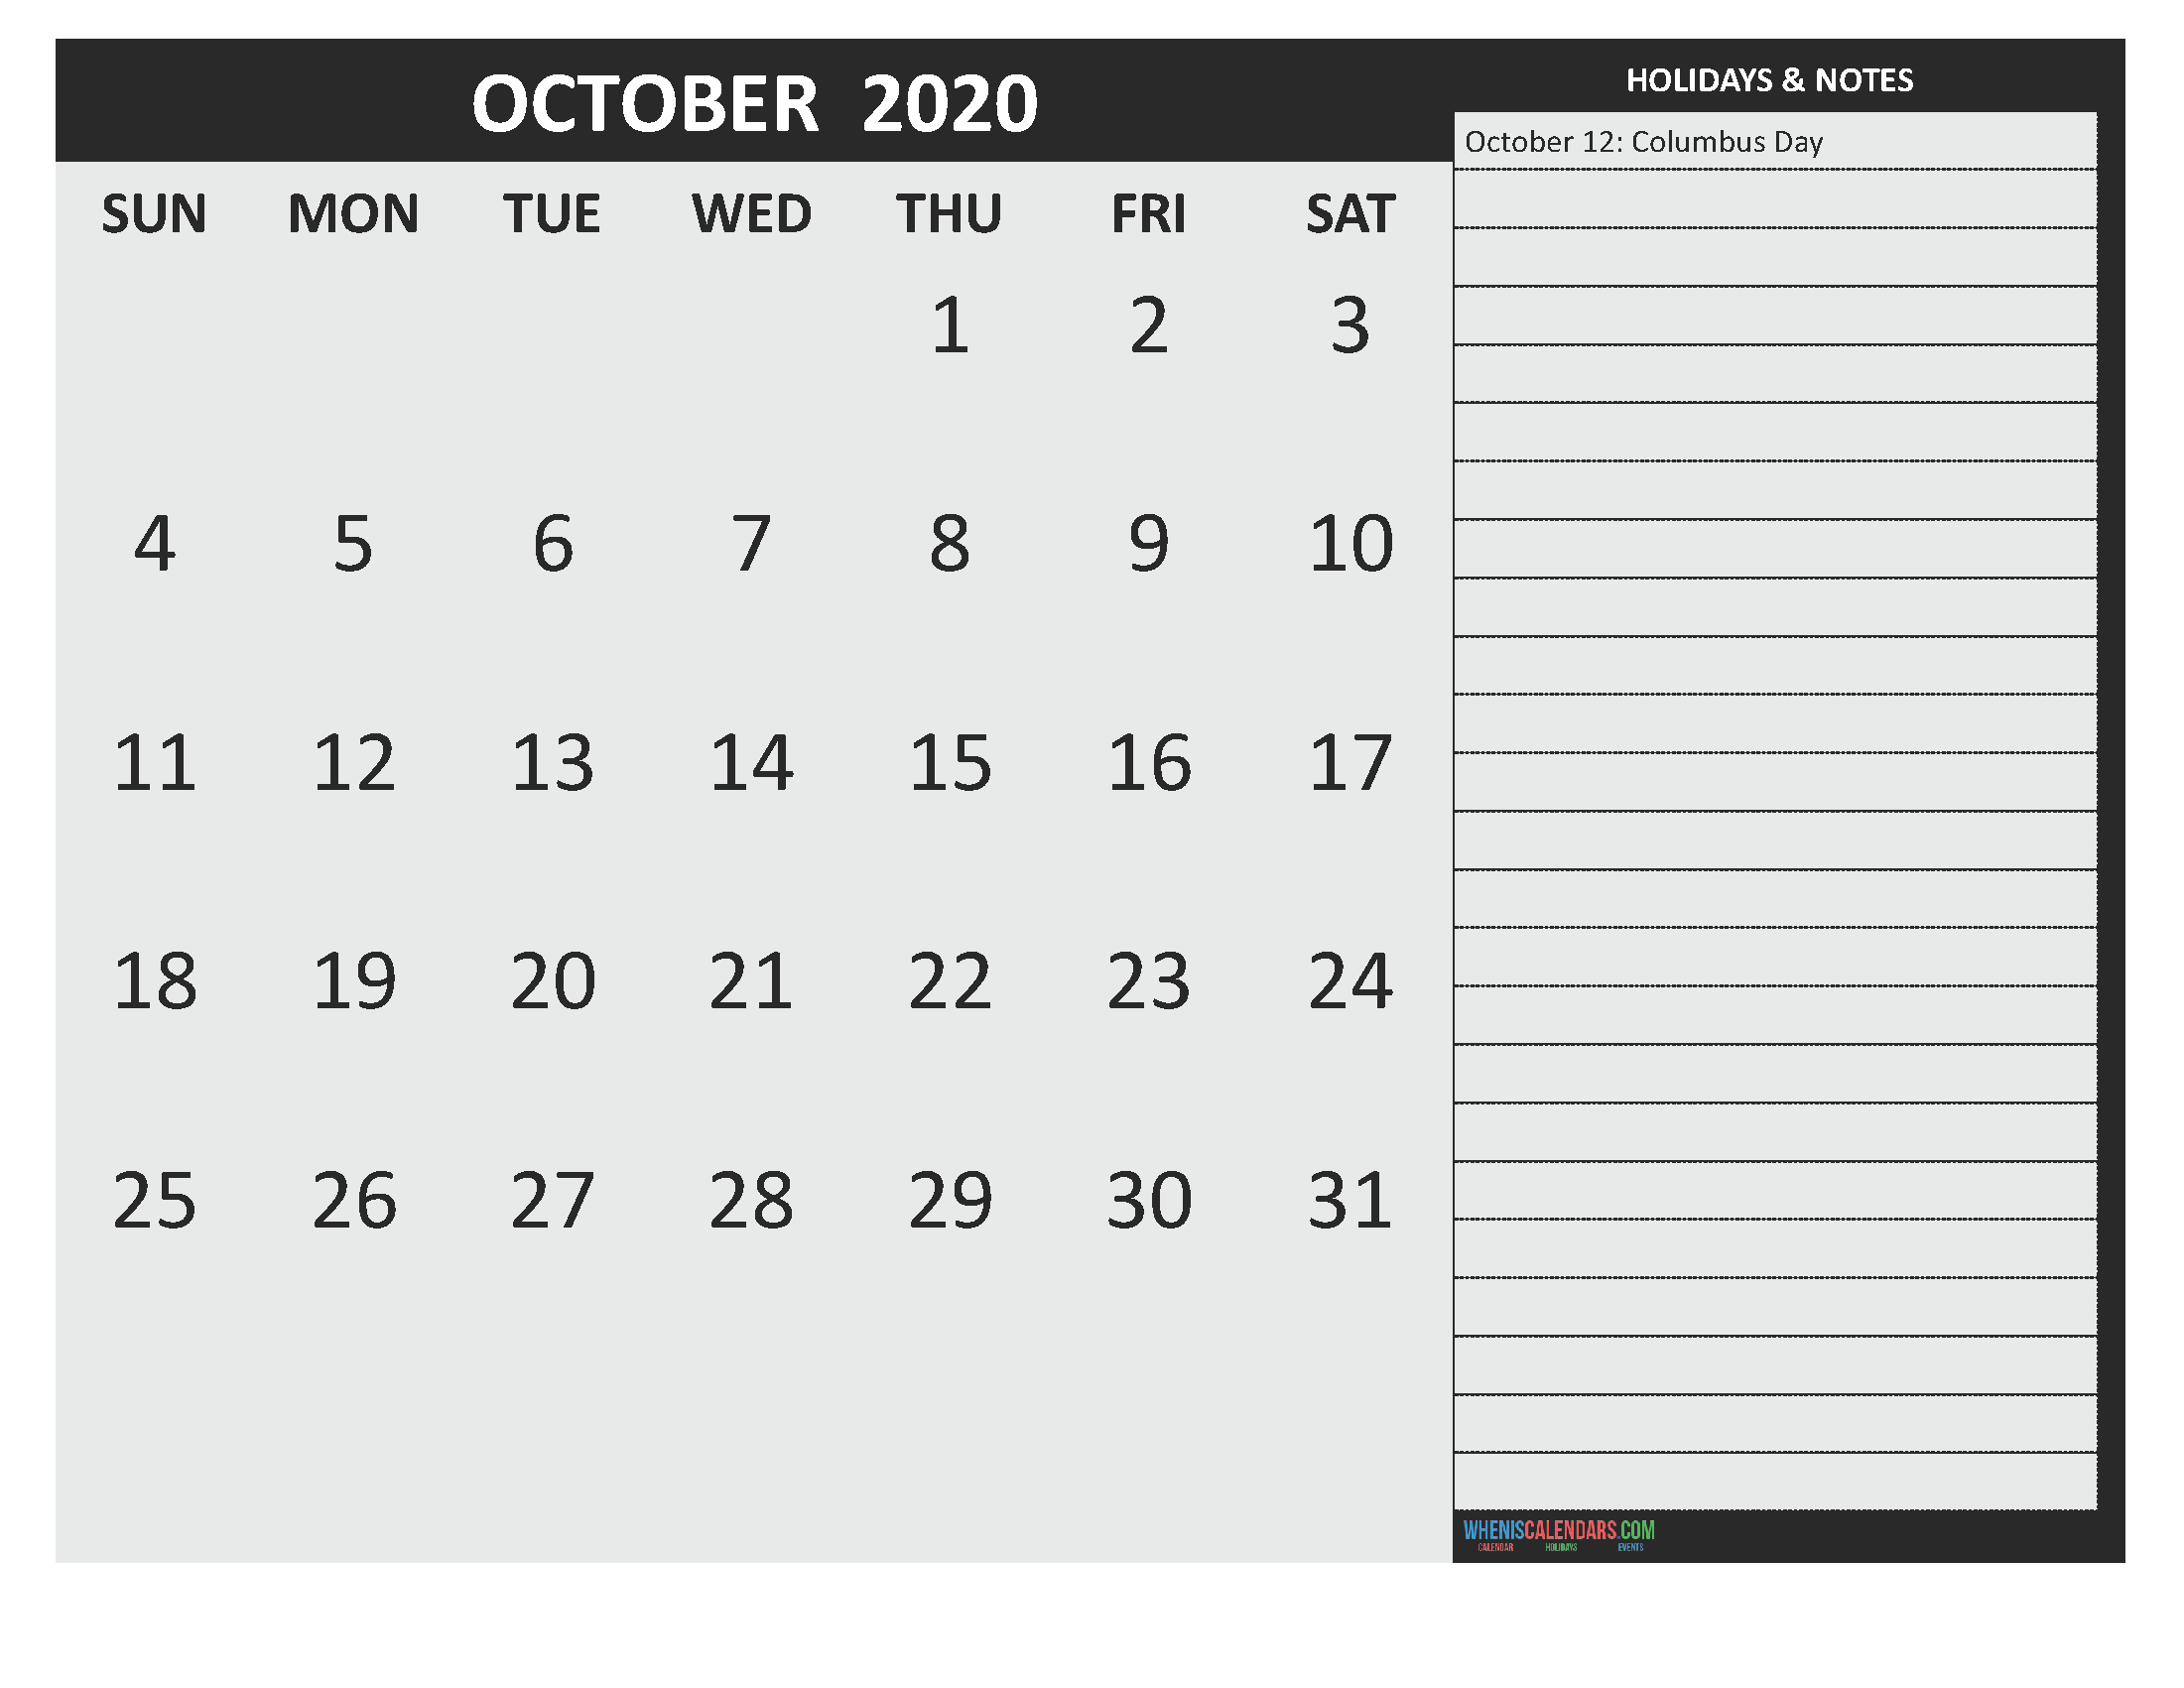 Free Printable Monthly Calendar 2020 October with Holidays